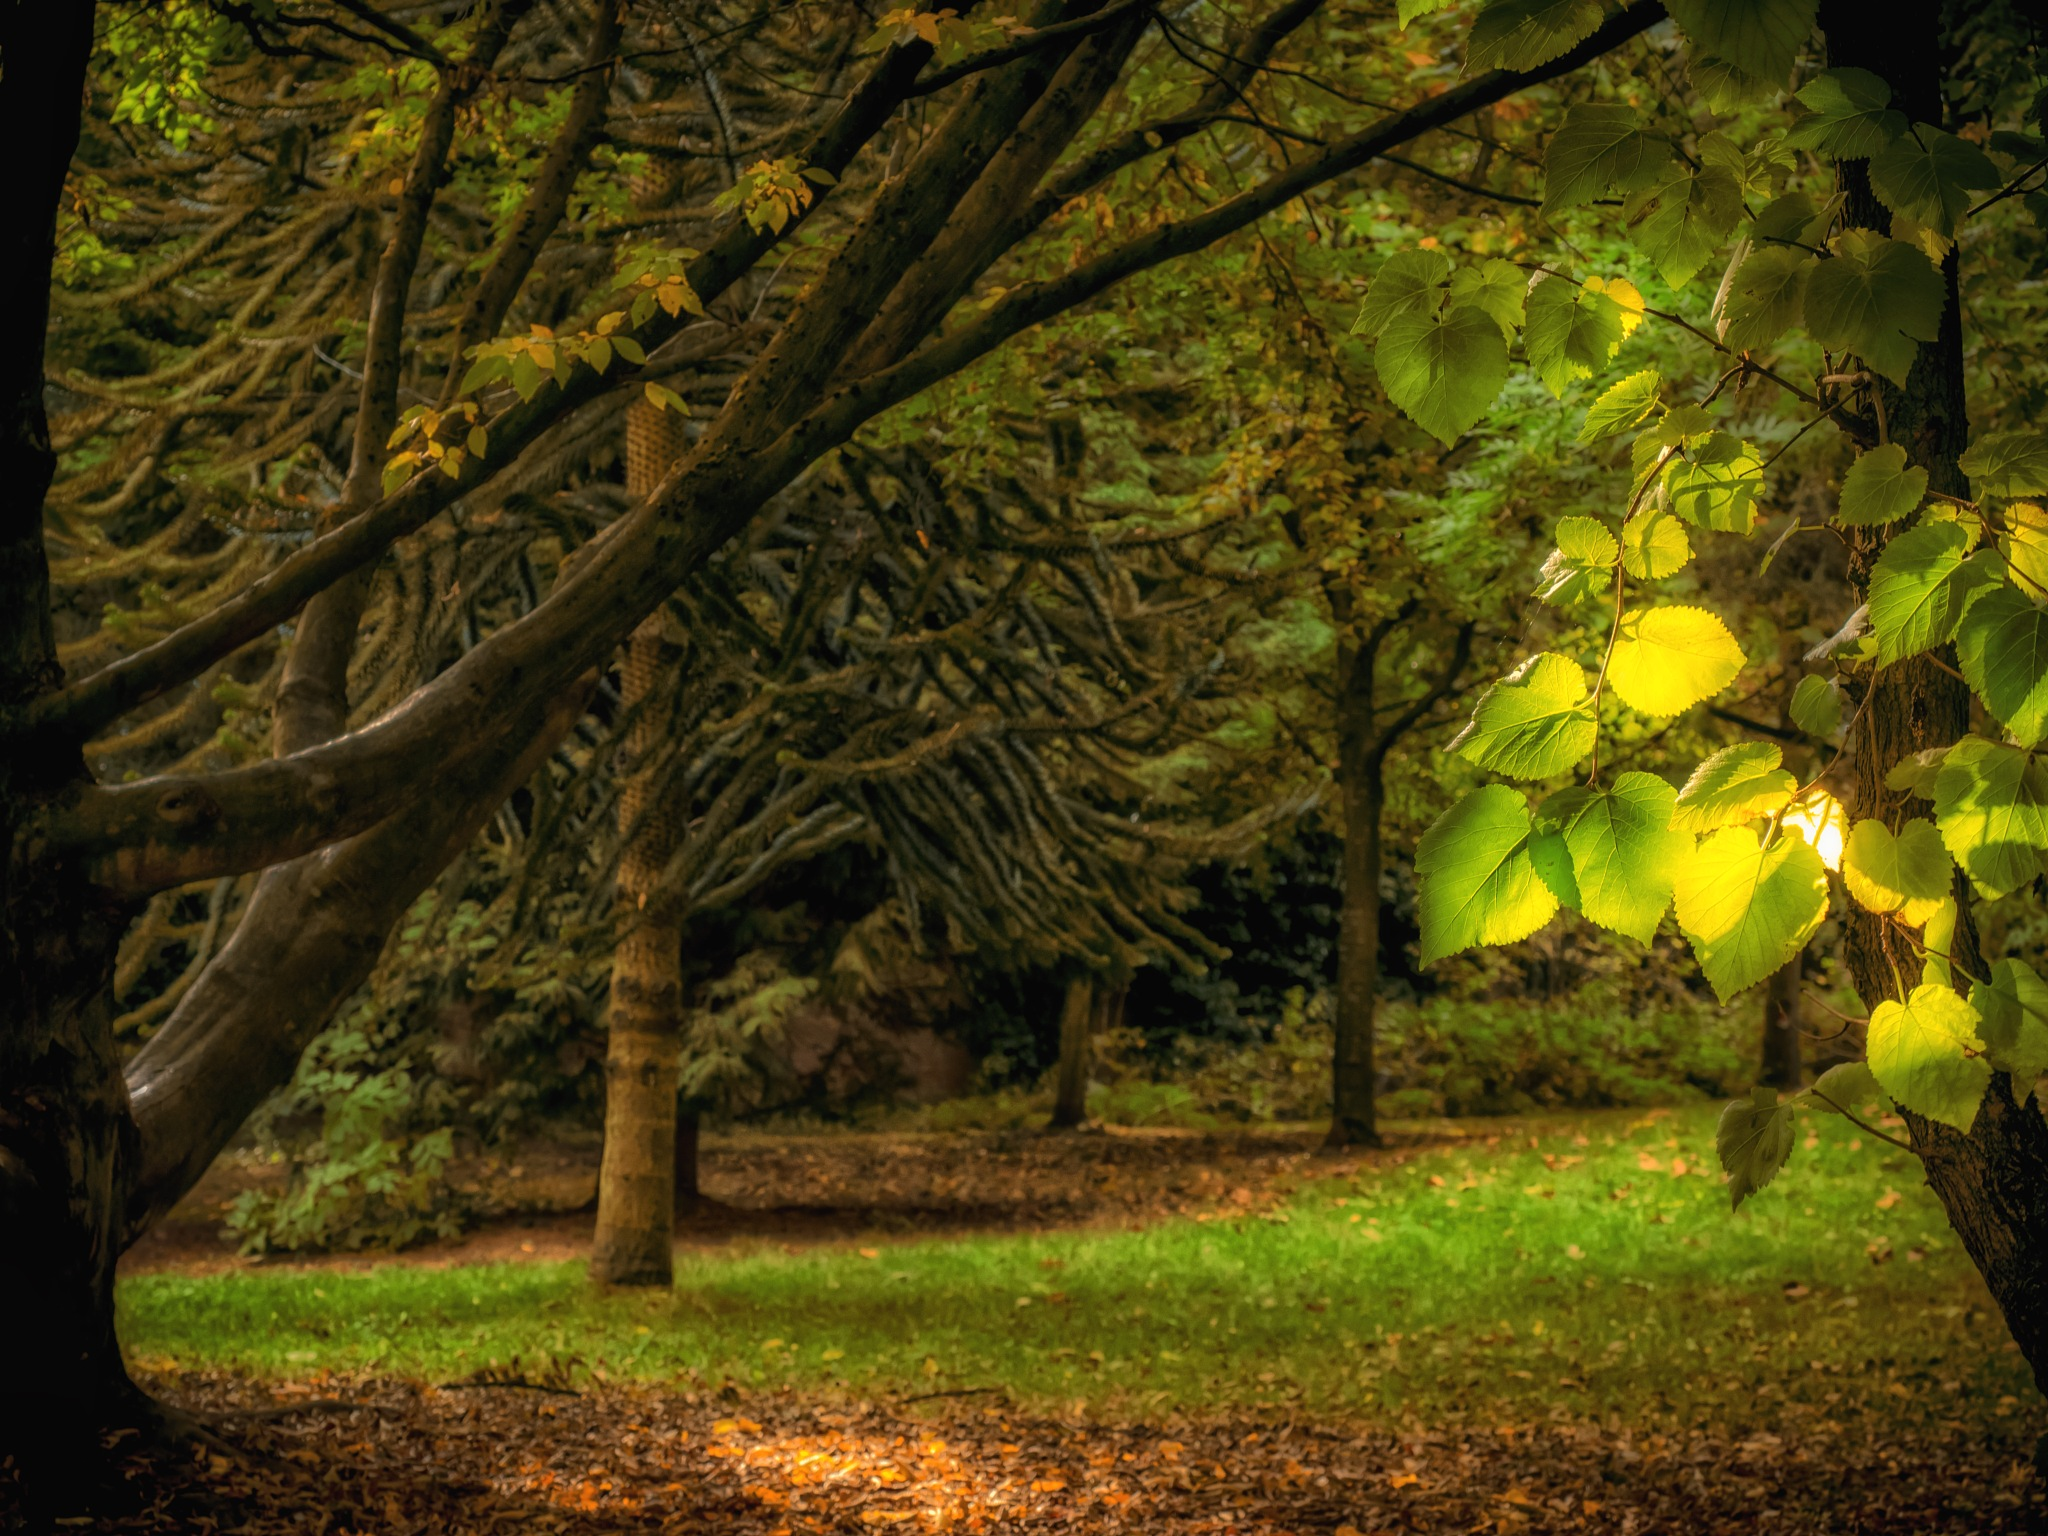 Bright leaves and dark spaces by Sarah Walters